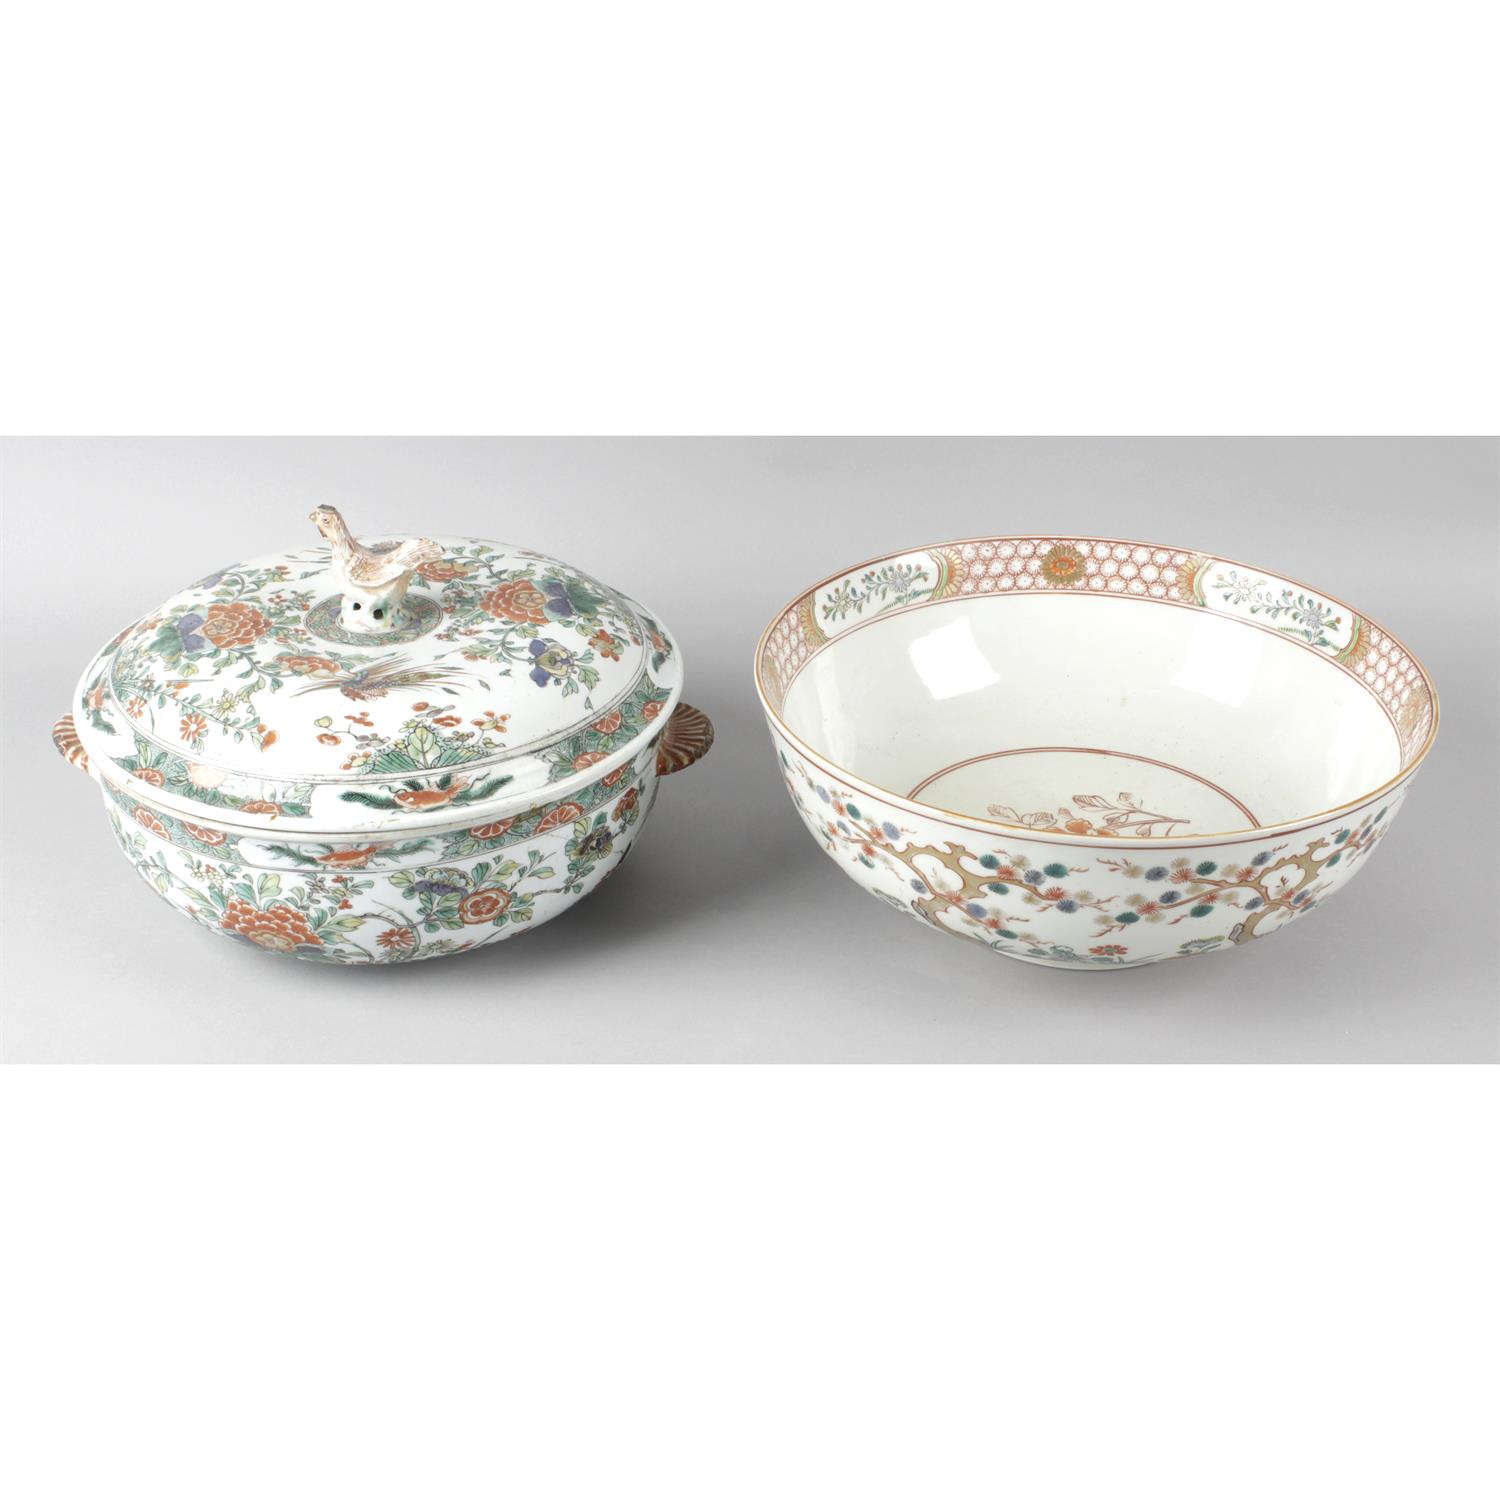 A twin handled oriental dish with cover together with an Imari bowl.